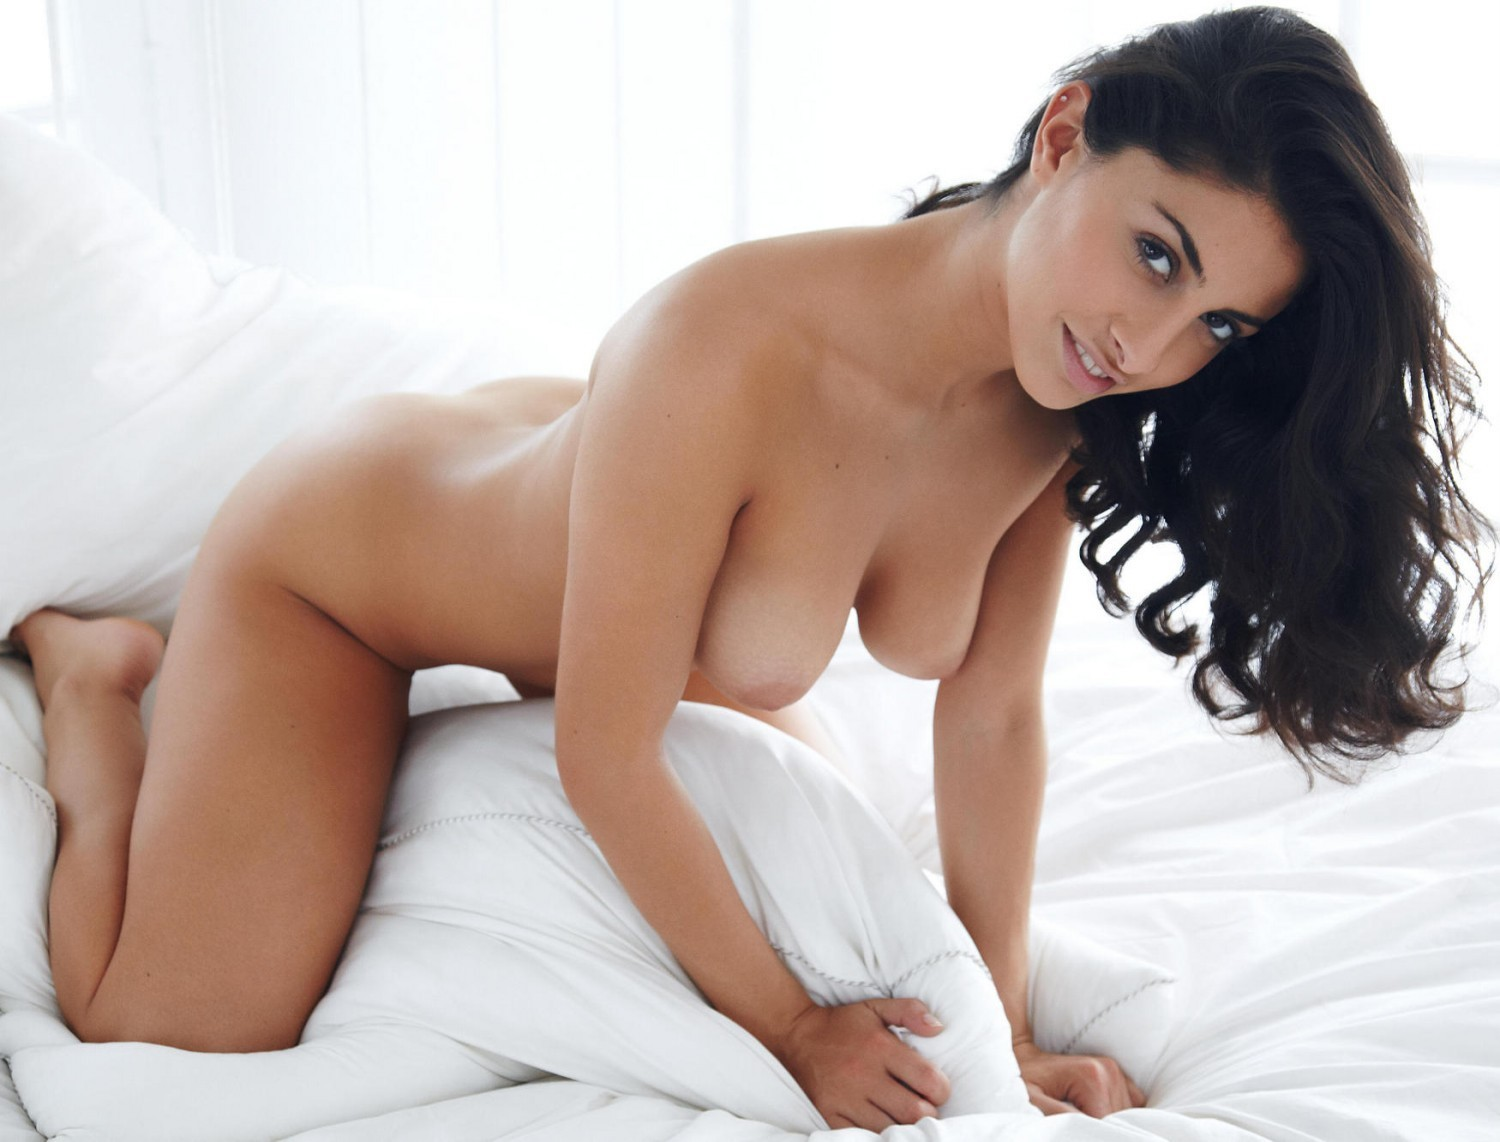 Indian model hot nude